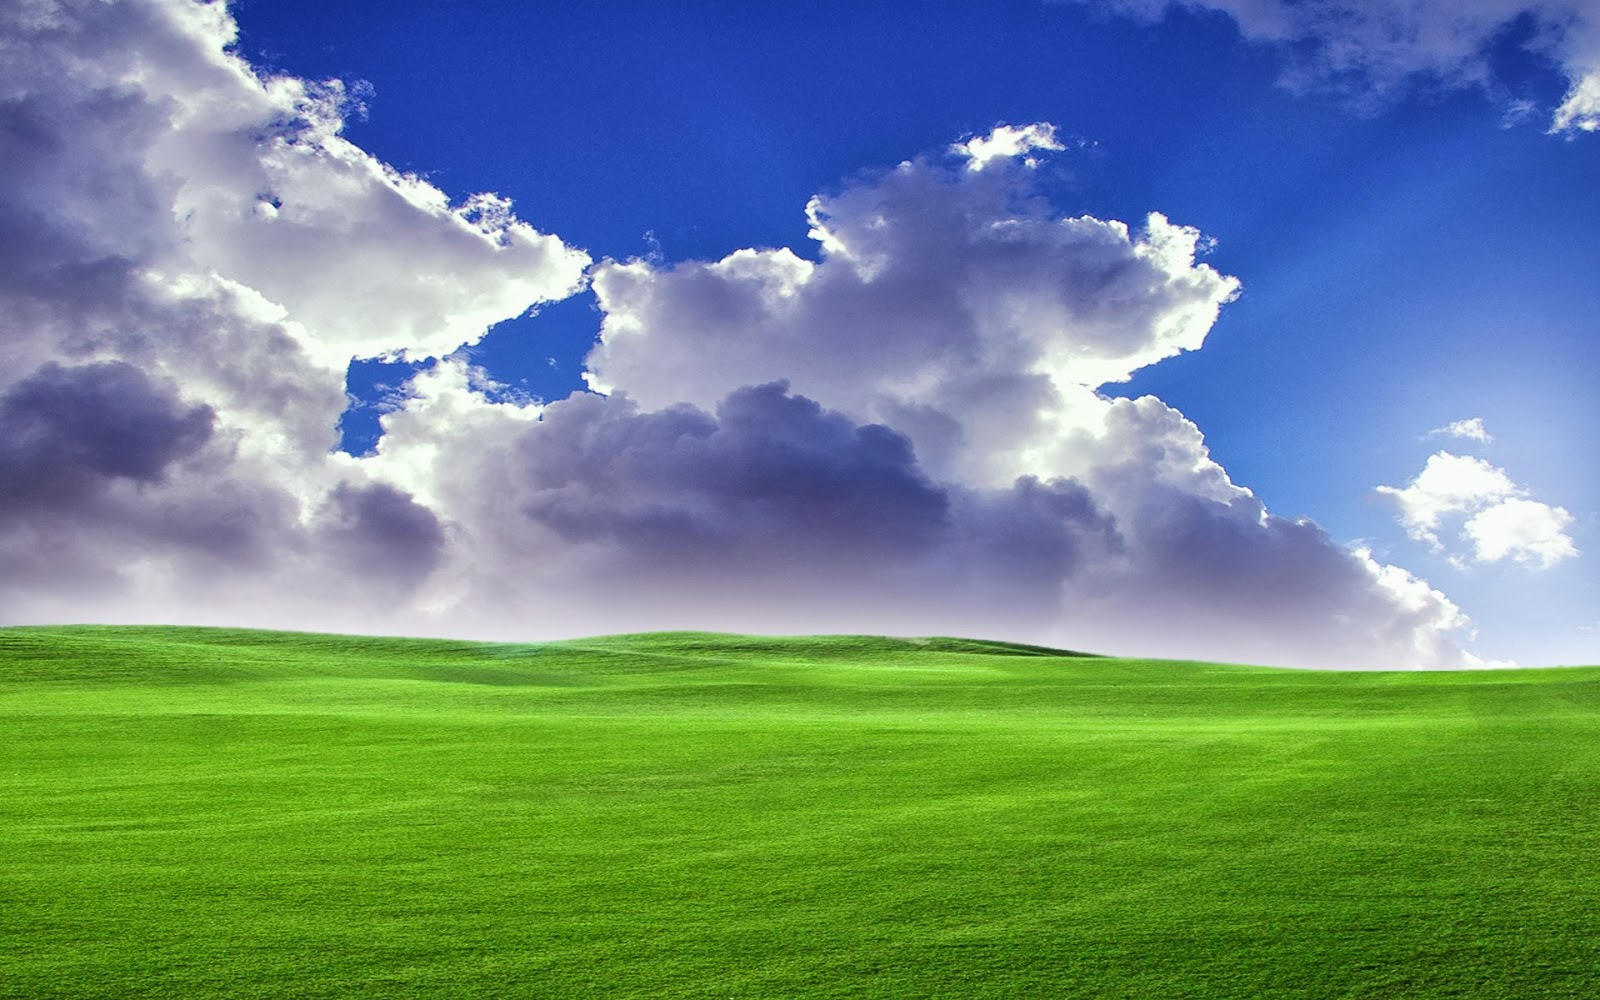 Windows XP Bliss 1920 X 1080